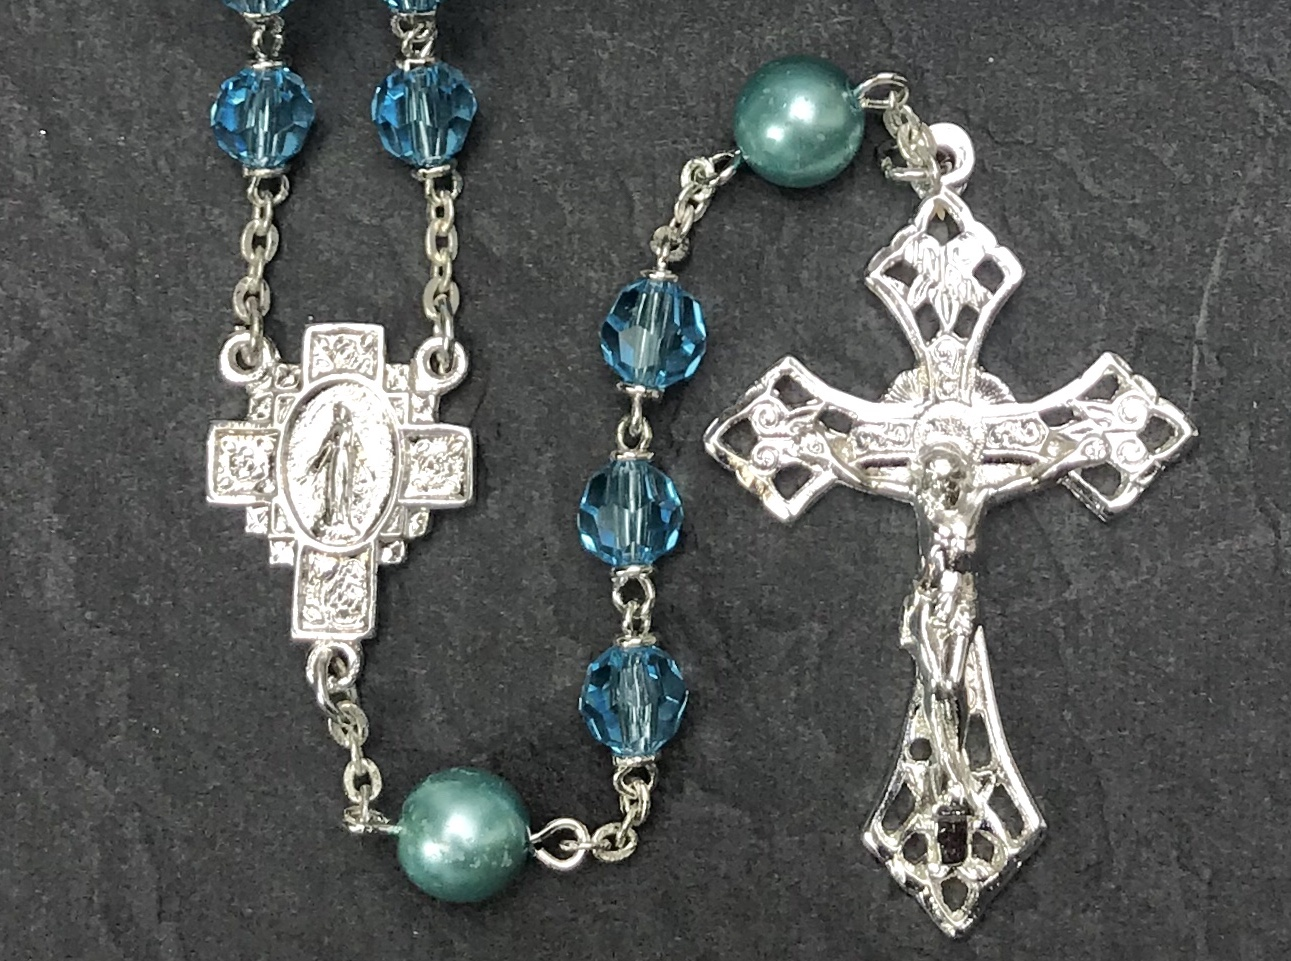 6mm AQUA TIN CUT WITH PEARL OUR FATHER BEADS WITH STERLING SILVER PLATE ROSARY BOXED